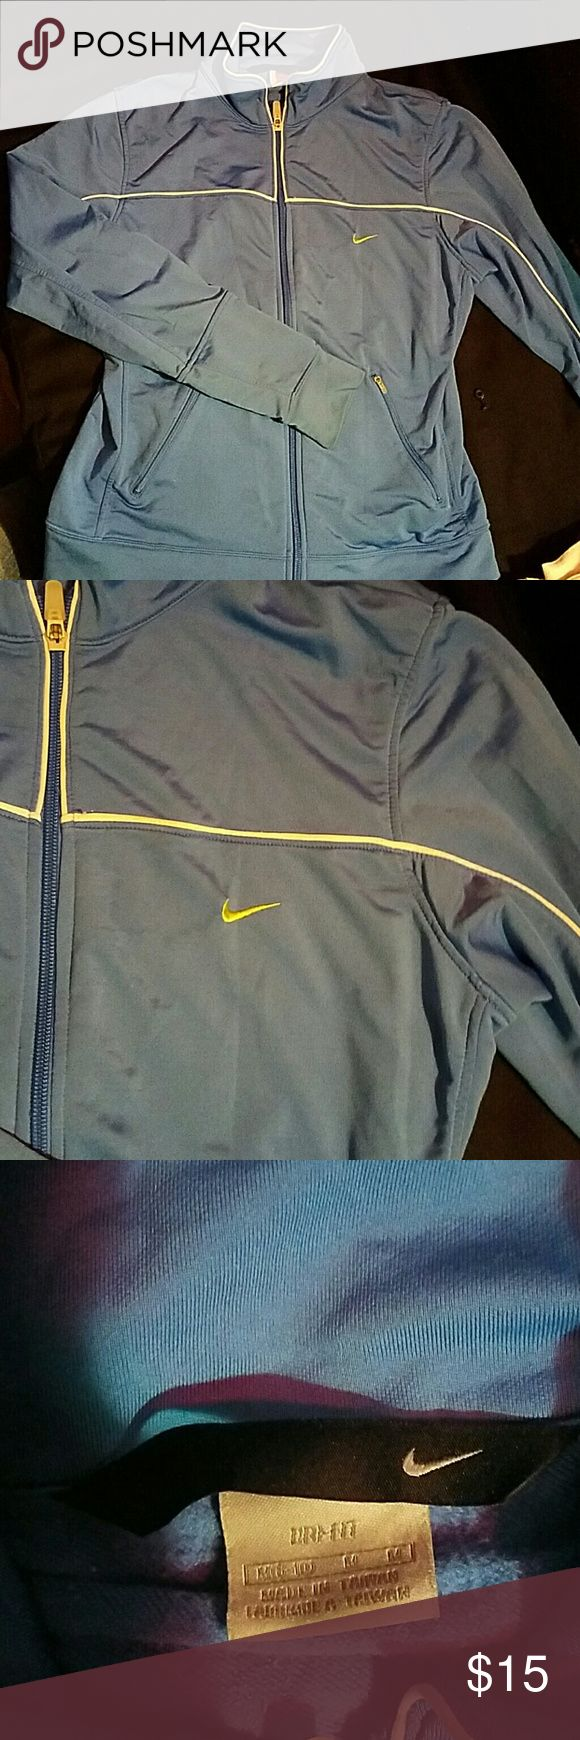 Nike zip up running long sleeved shirt Nike brand.  Thin dri-lite material.  Baby Blue in color with white piping and a neon yellow swoosh.  Size medium womens. Nike Tops Tees - Long Sleeve